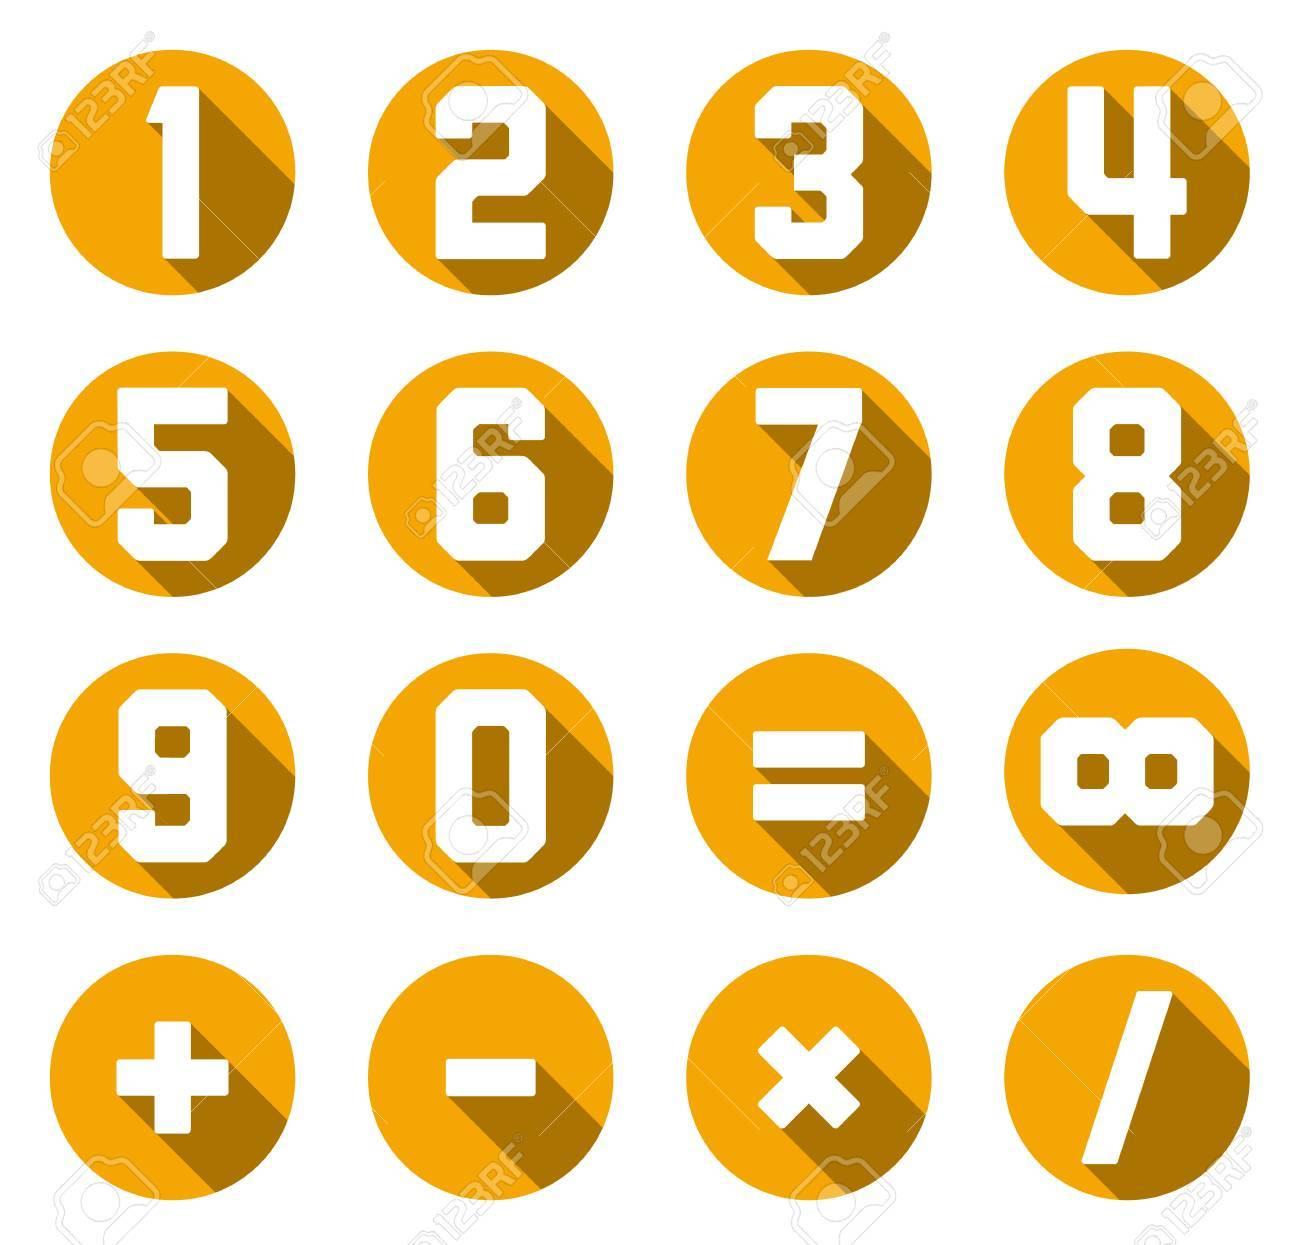 Set of isolated yellow flat numbers and math symbols royalty free set of isolated yellow flat numbers and math symbols stock vector 38437316 biocorpaavc Choice Image